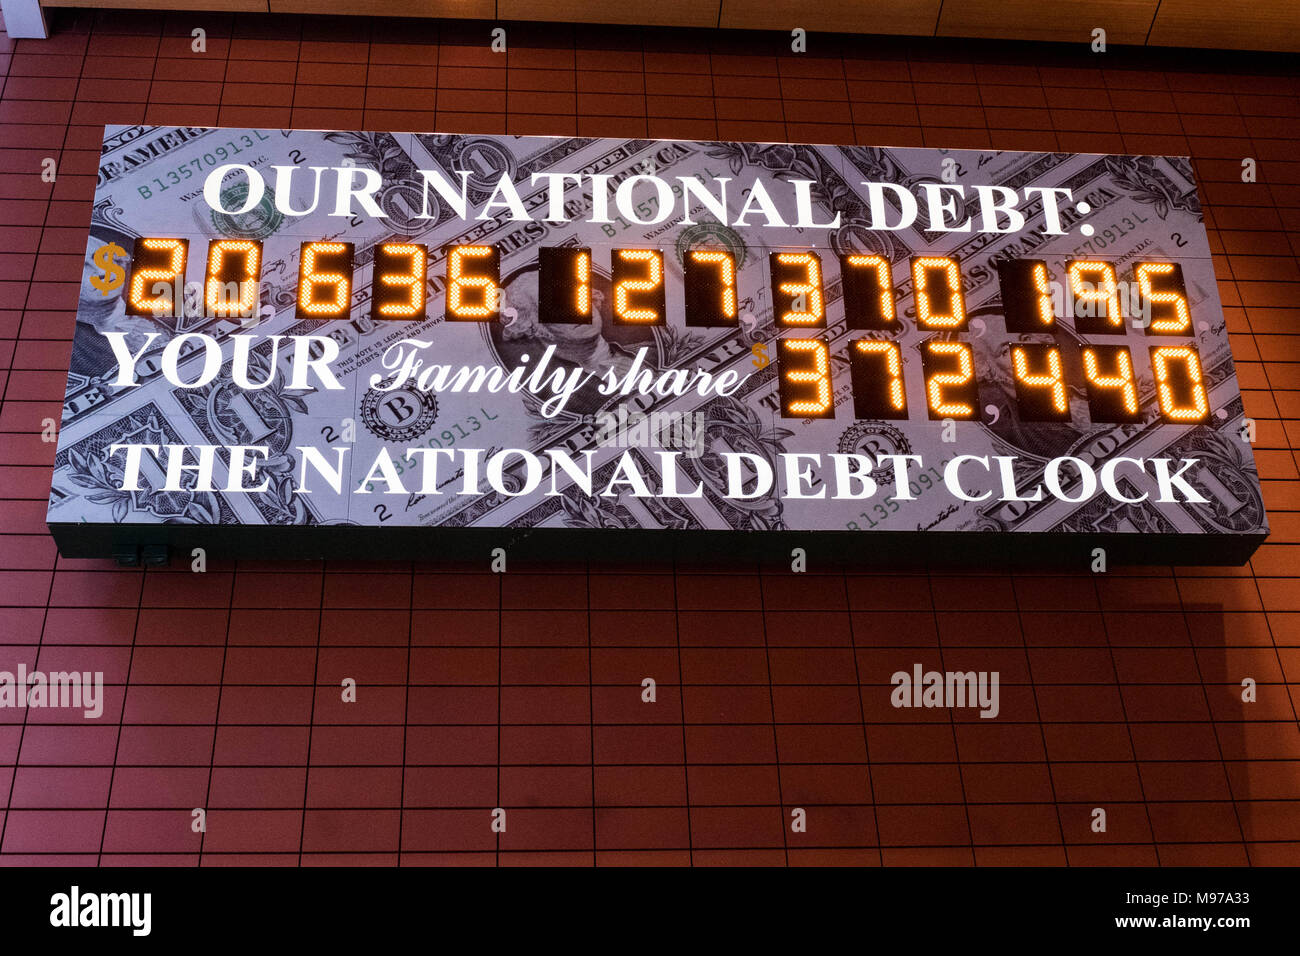 New York, NY, USA. 23rd Mar, 2018. The National Debt Clock is a very very large digital display of the current gross national debt of the United States. It is mounted on a western facing wall in a wide covered alley in the middle of the block and runs between West 42nd Street and West 43rd Street. The alley is located between Sixth Avenue and Broadway in New York City. The displayed debt shown is as of March 23, 2018 when this image was created. Credit: Michael Brochstein/SOPA Images/ZUMA Wire/Alamy Live News - Stock Image